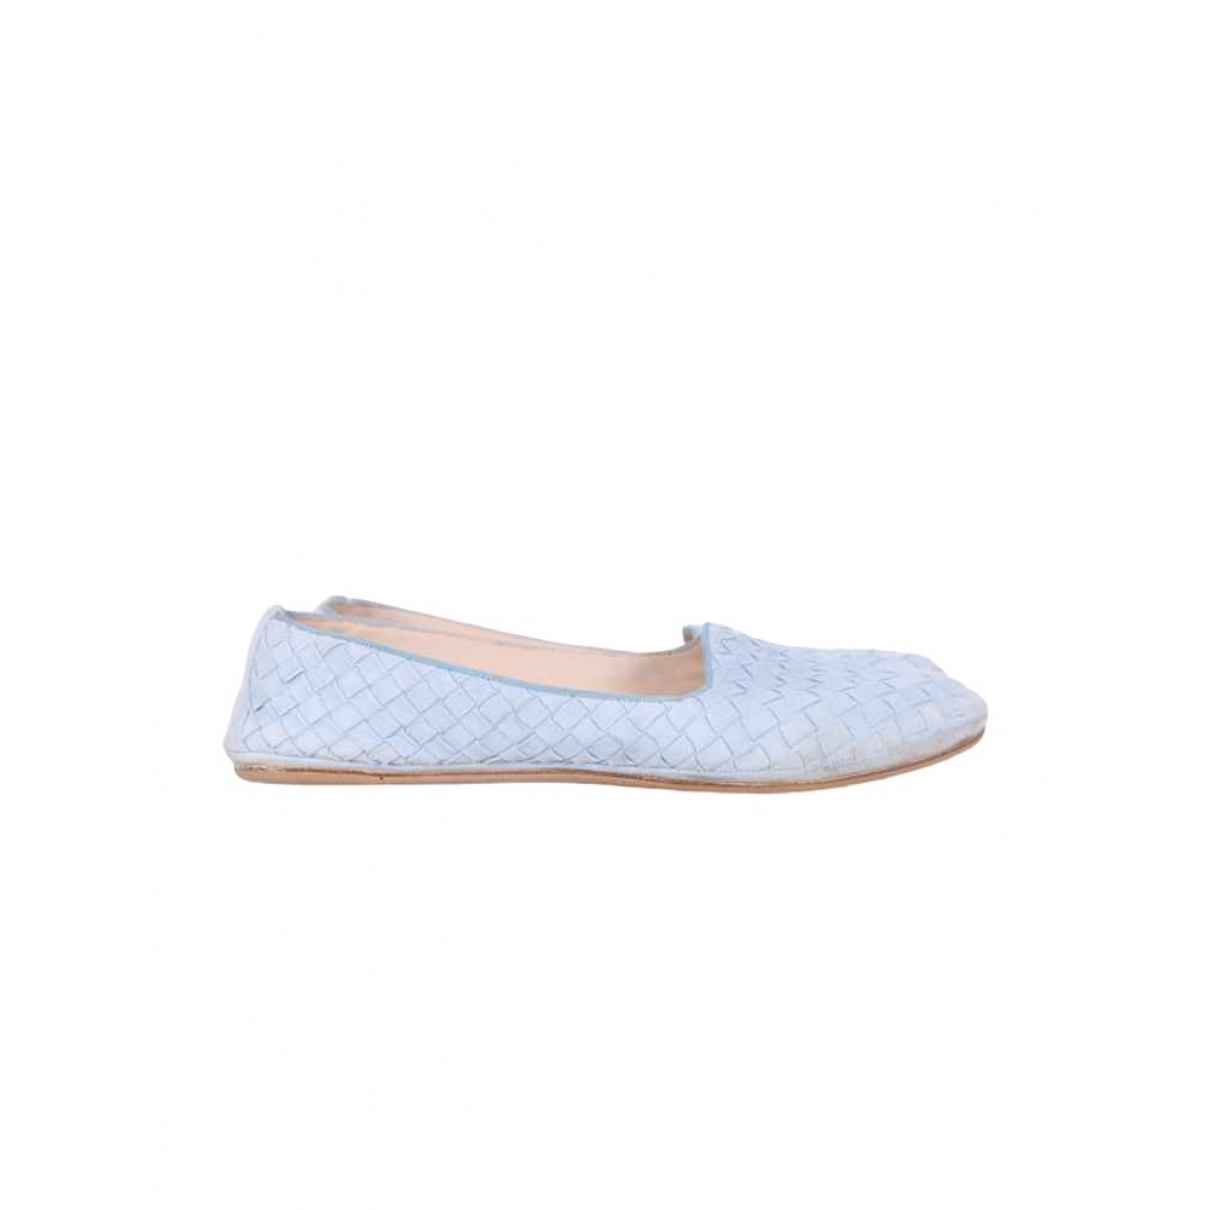 Bottega Veneta \N Blue Suede Ballet flats for Women 38 EU